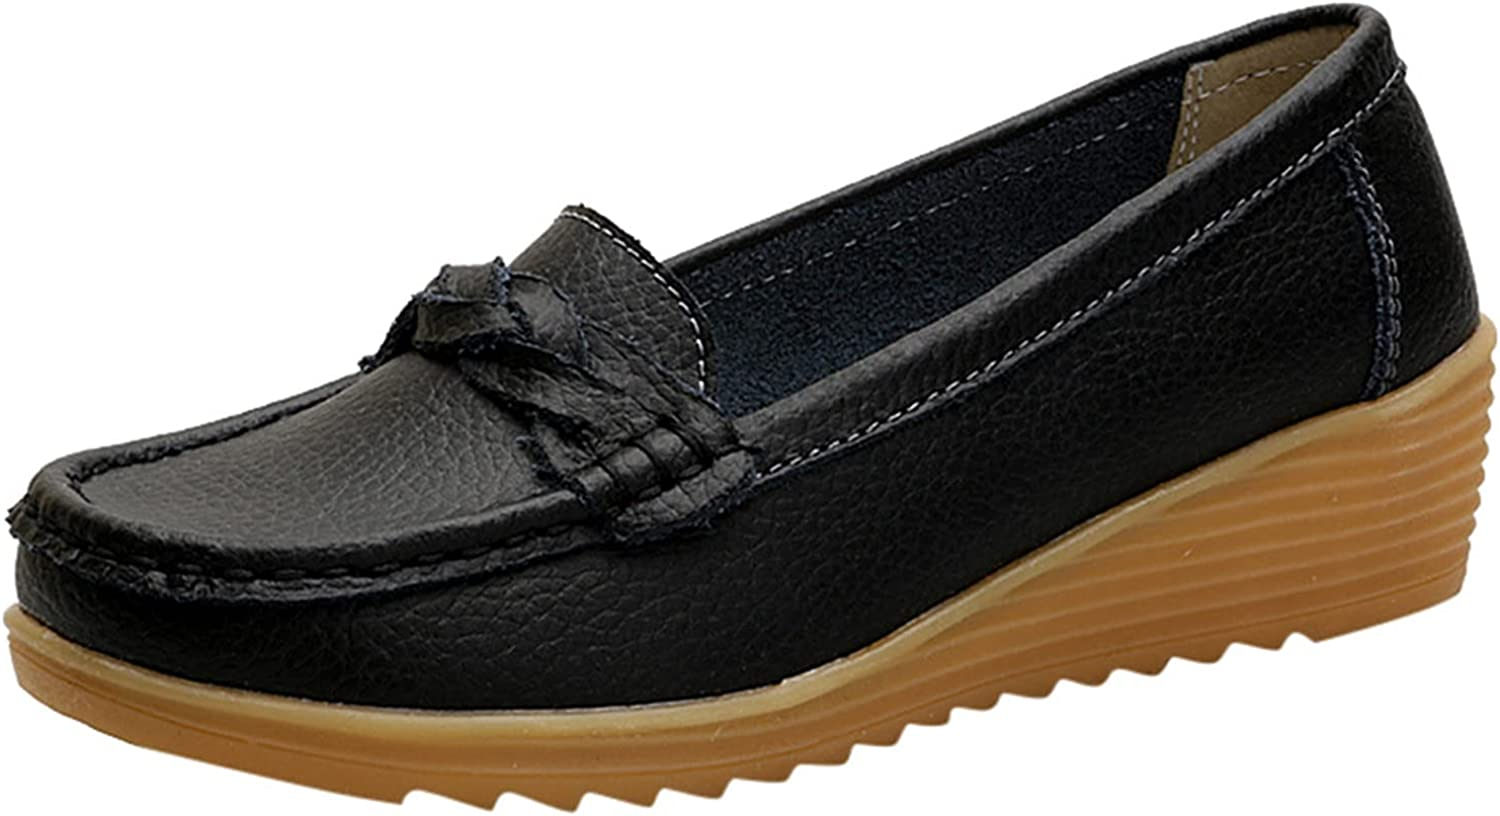 Women's Classic Leather Loafers Casual Slip On Wedge Comfort Driving Office Loafer Shoes Solid Color Slip On Soft Loafers Work Shoe